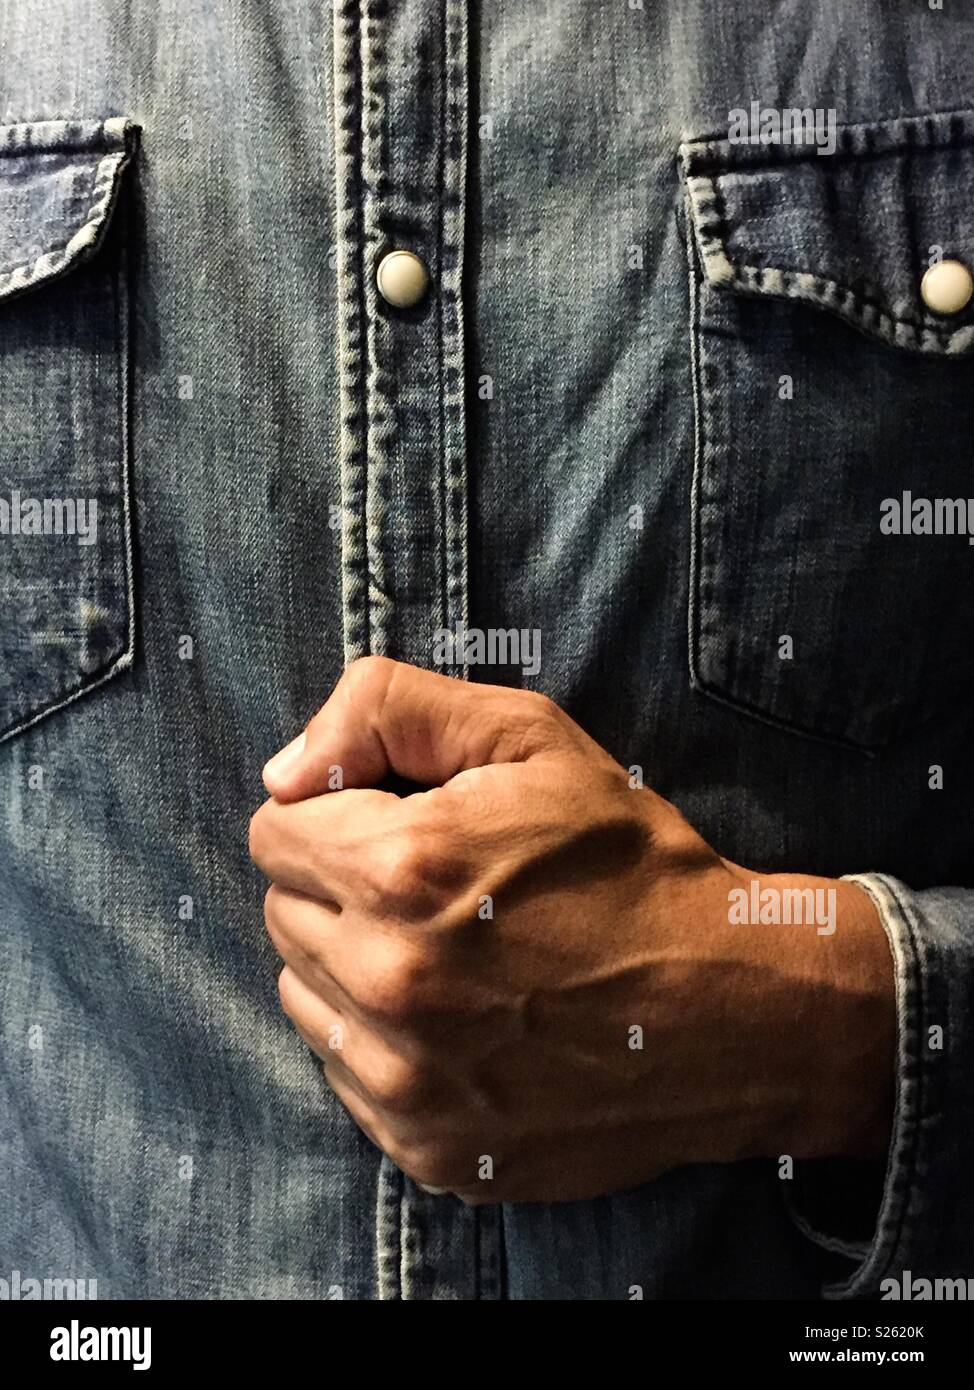 closed fist with a denim shirt - Stock Image